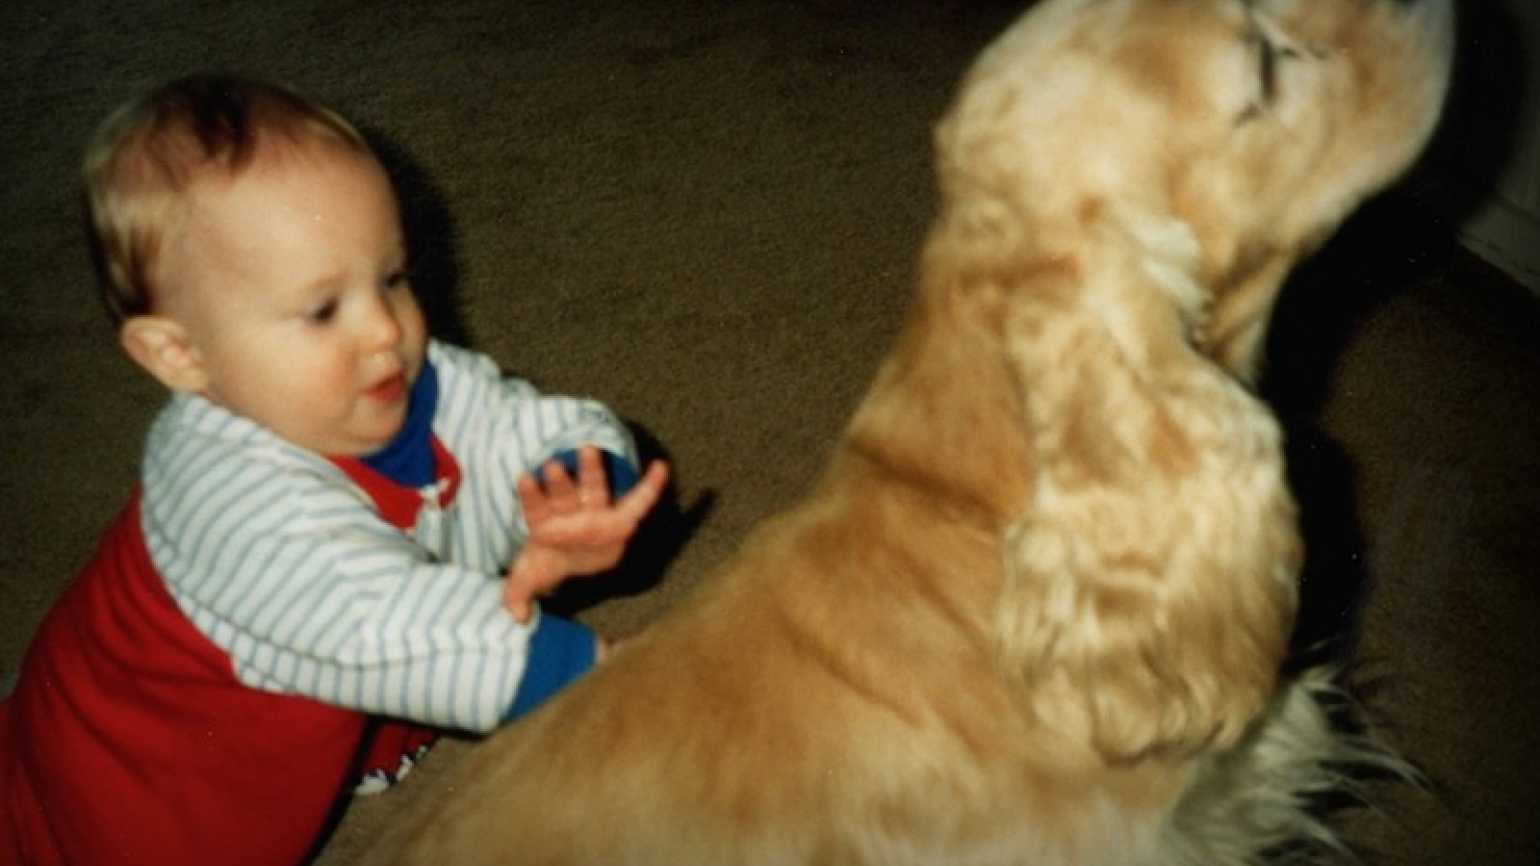 Jimmy as a toddler learning to walk with the family dog, Sherlock.